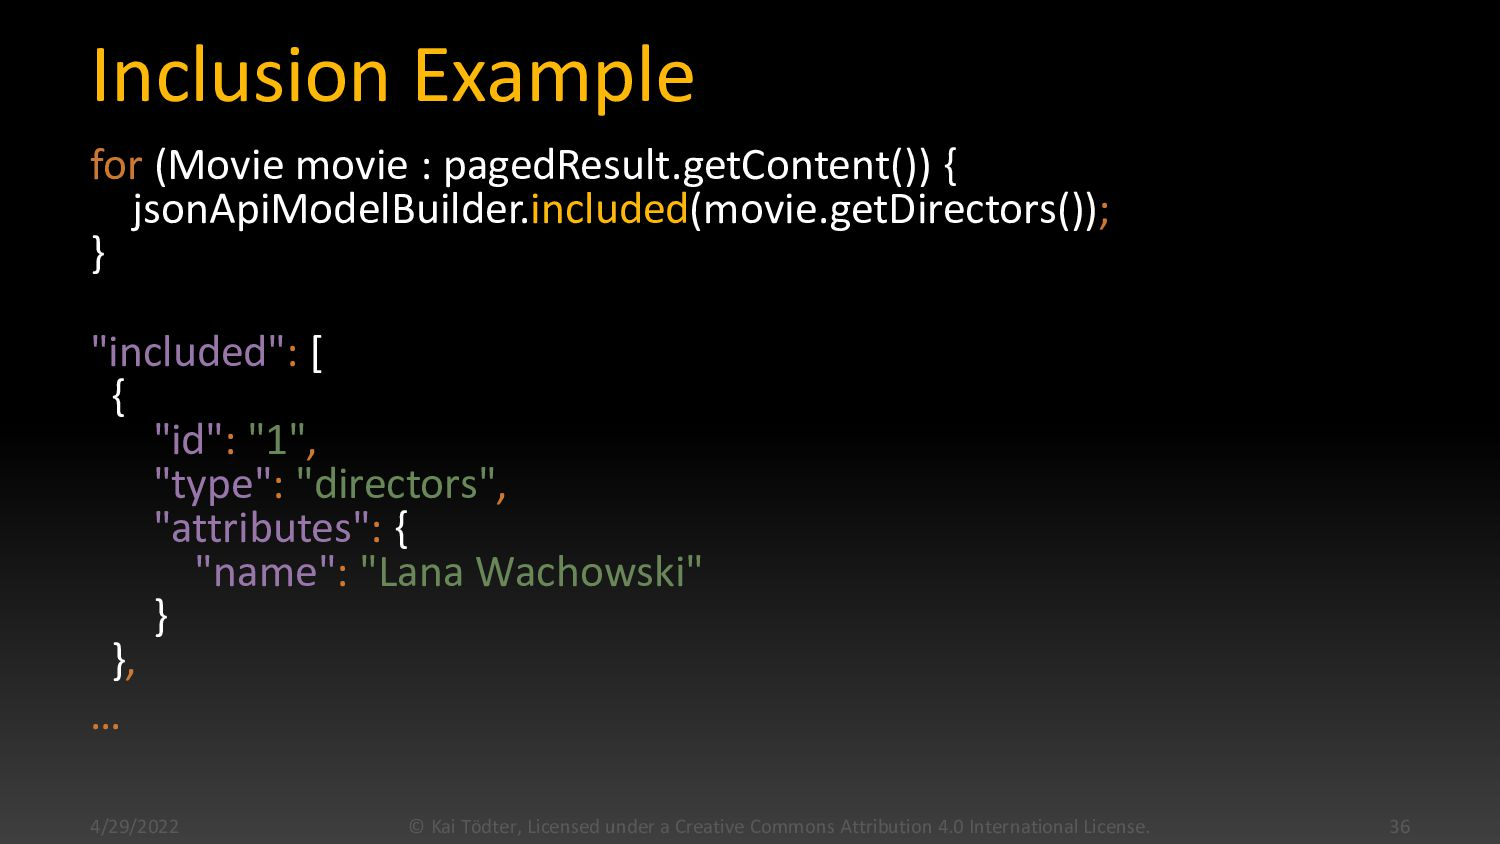 Inclusion Example for (Movie movie : pagedResul...